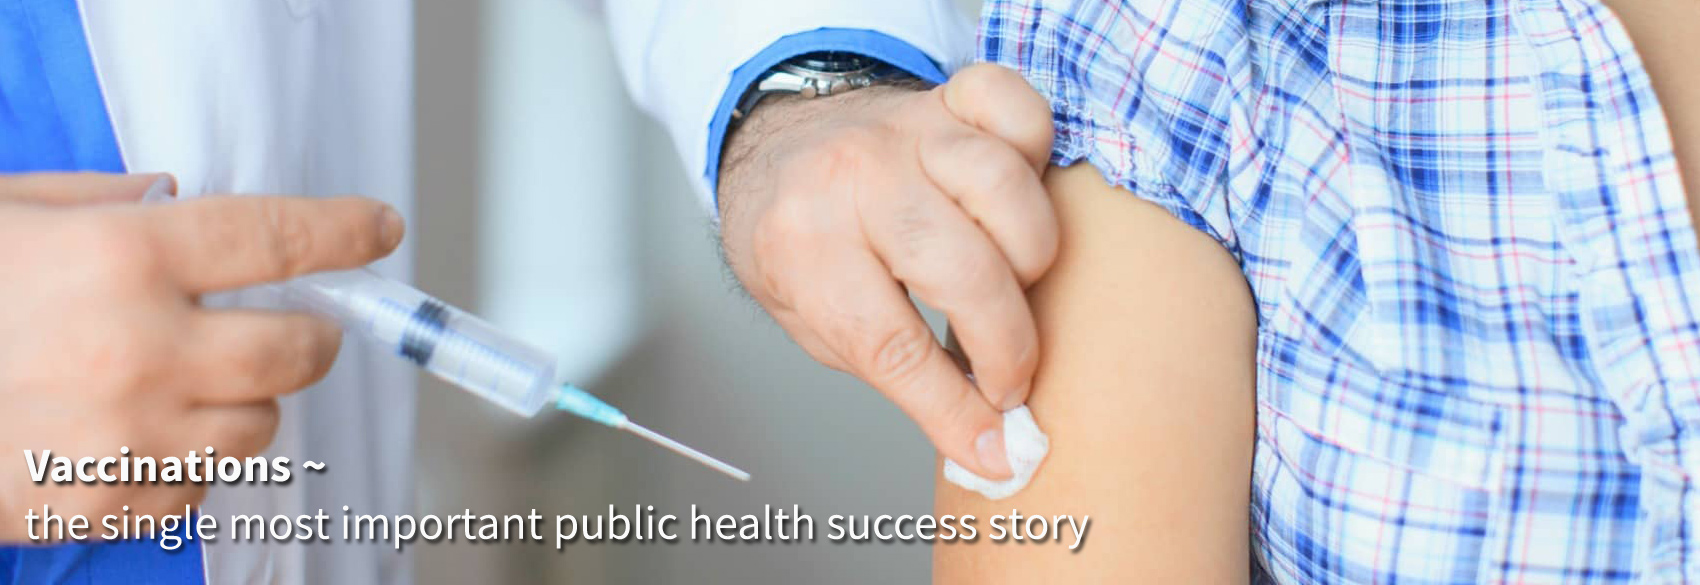 Vaccinations ~  the most important public health success story ever